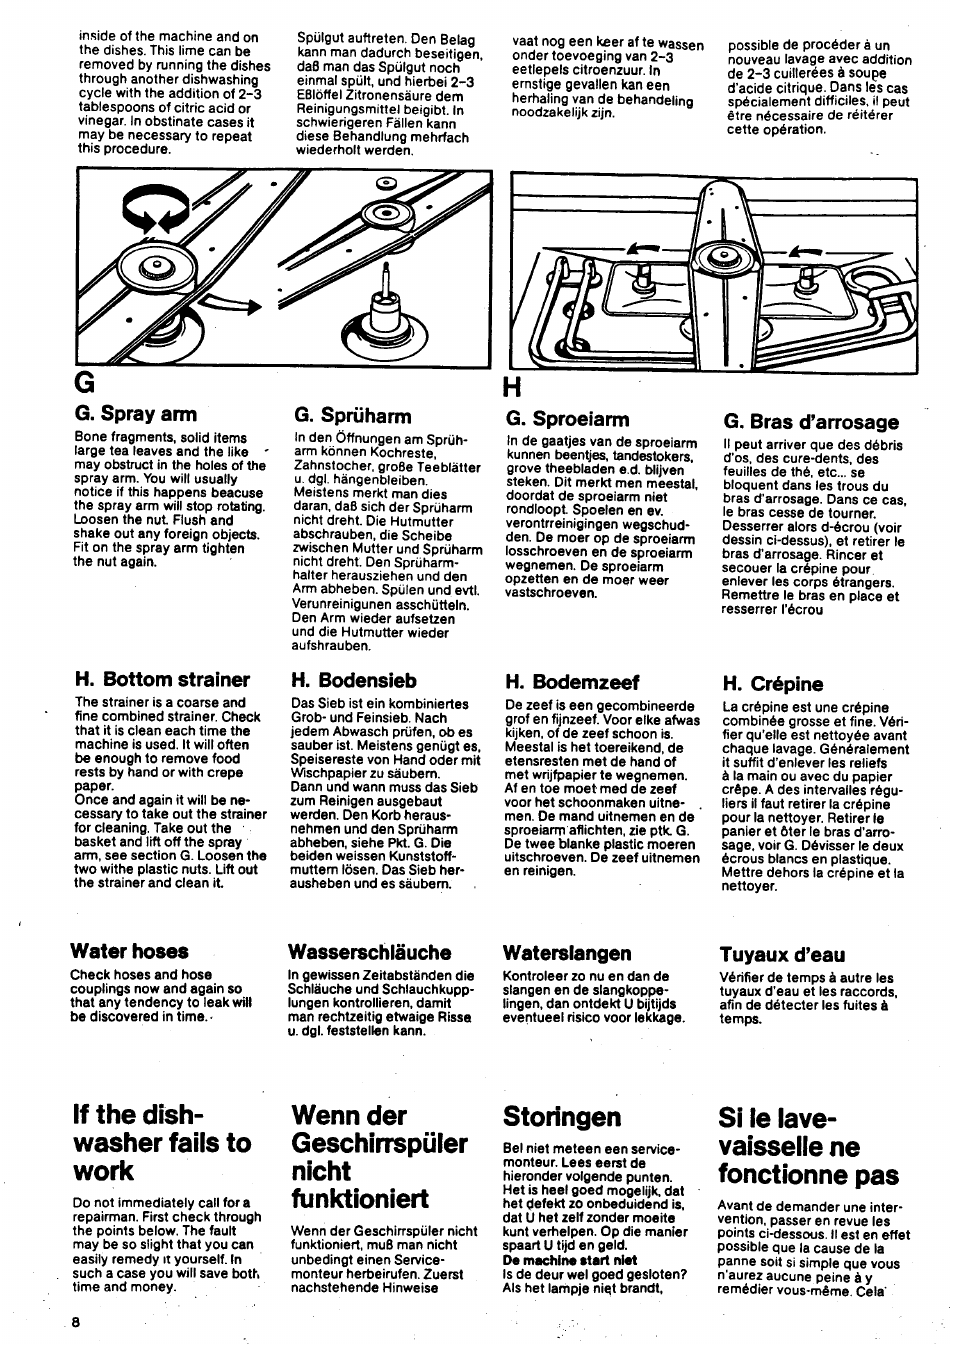 Brandt oven instruction in the english language a list of.